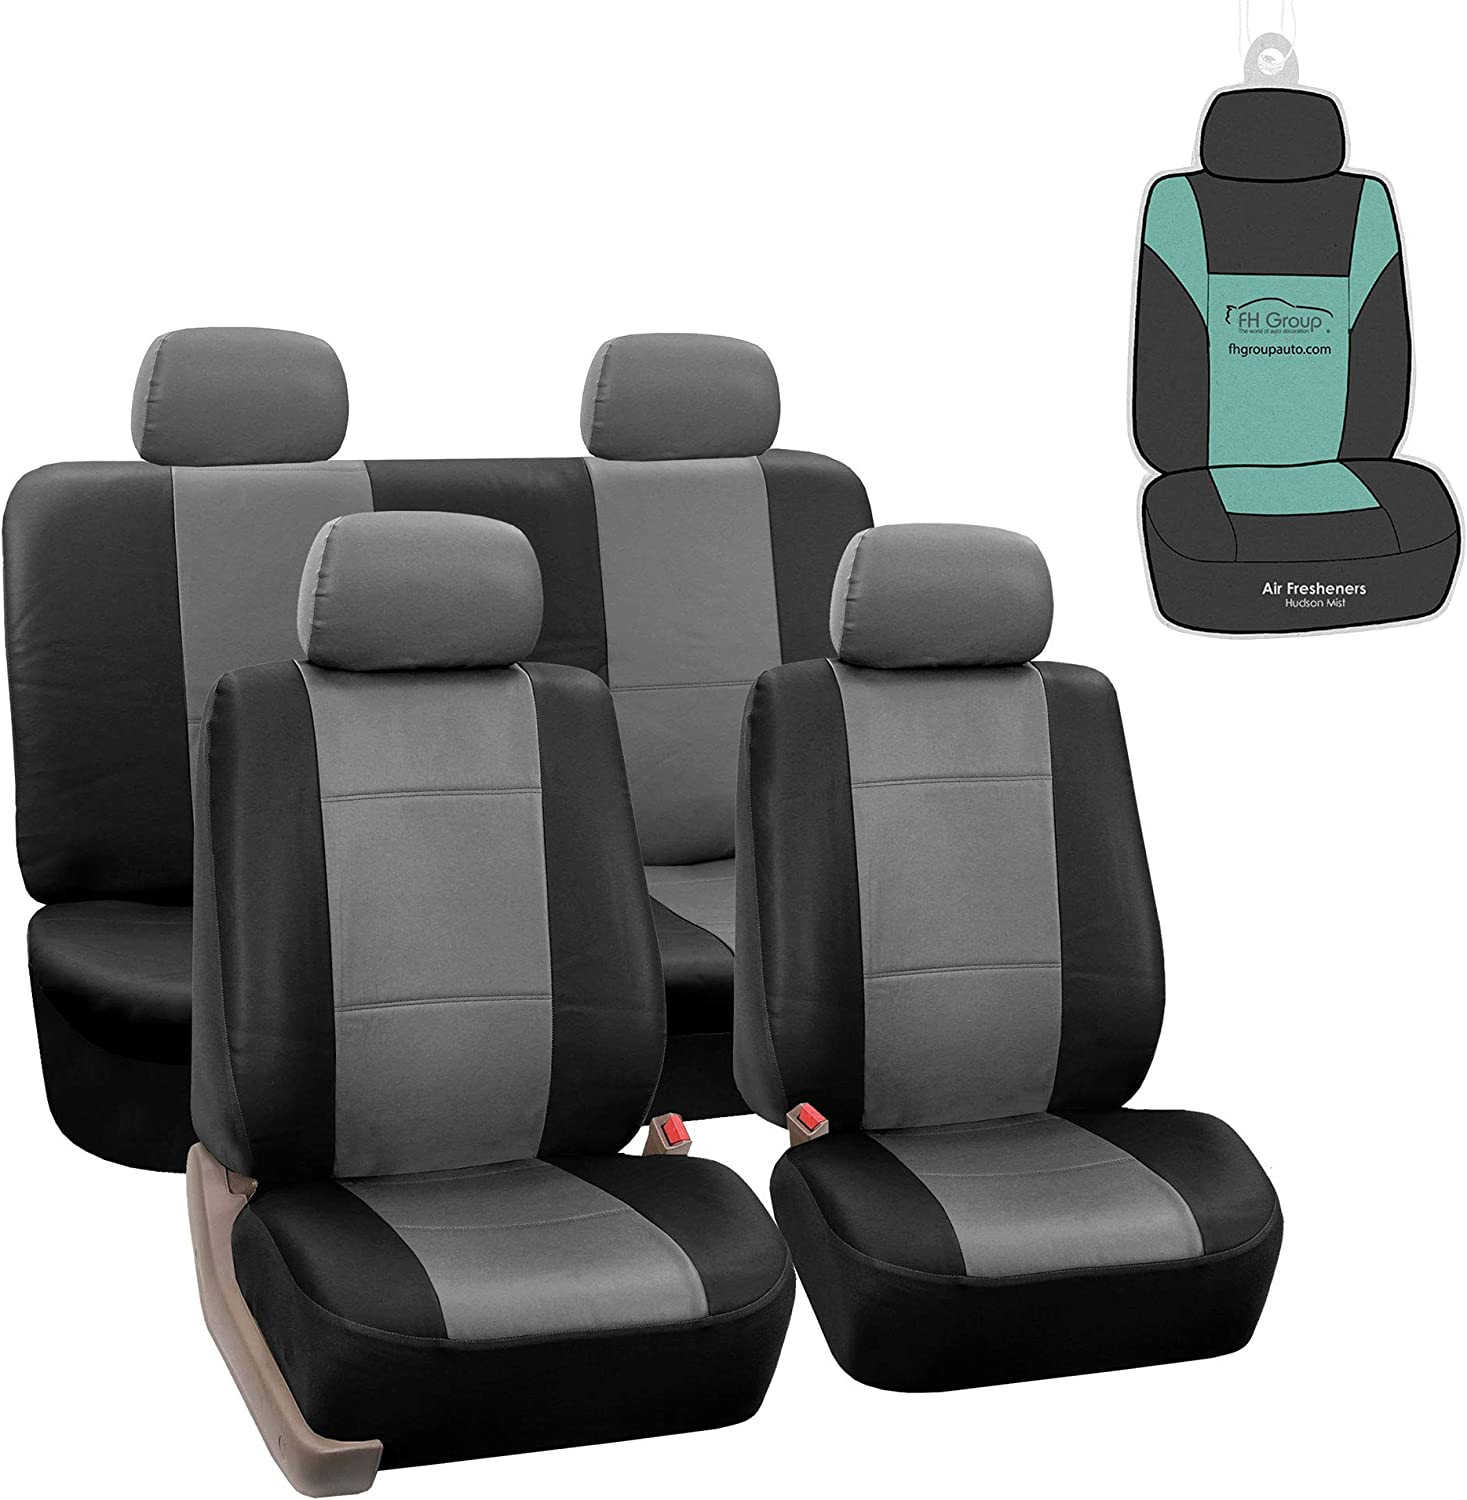 FH Group PU002114 Premium PU Leather Seat Covers (Gray) Full Set with Gift – Universal Fit for Cars Trucks and SUVs